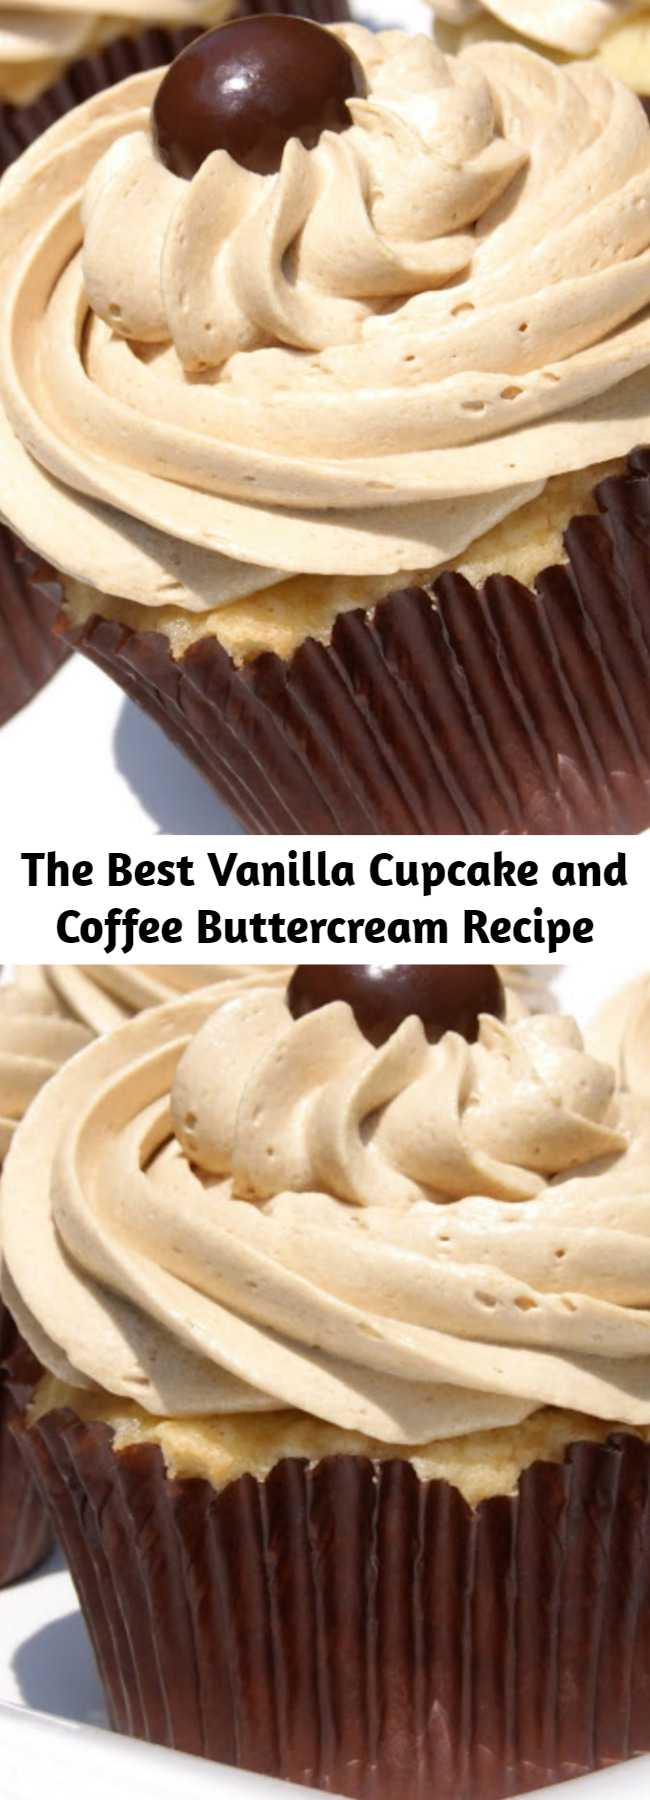 The Best Vanilla Cupcake and Coffee Buttercream Recipe - Fluffy & delicious ~ These are truly the BEST vanilla cupcakes with the BEST coffee buttercream frosting. A double sweet treat, for sure!